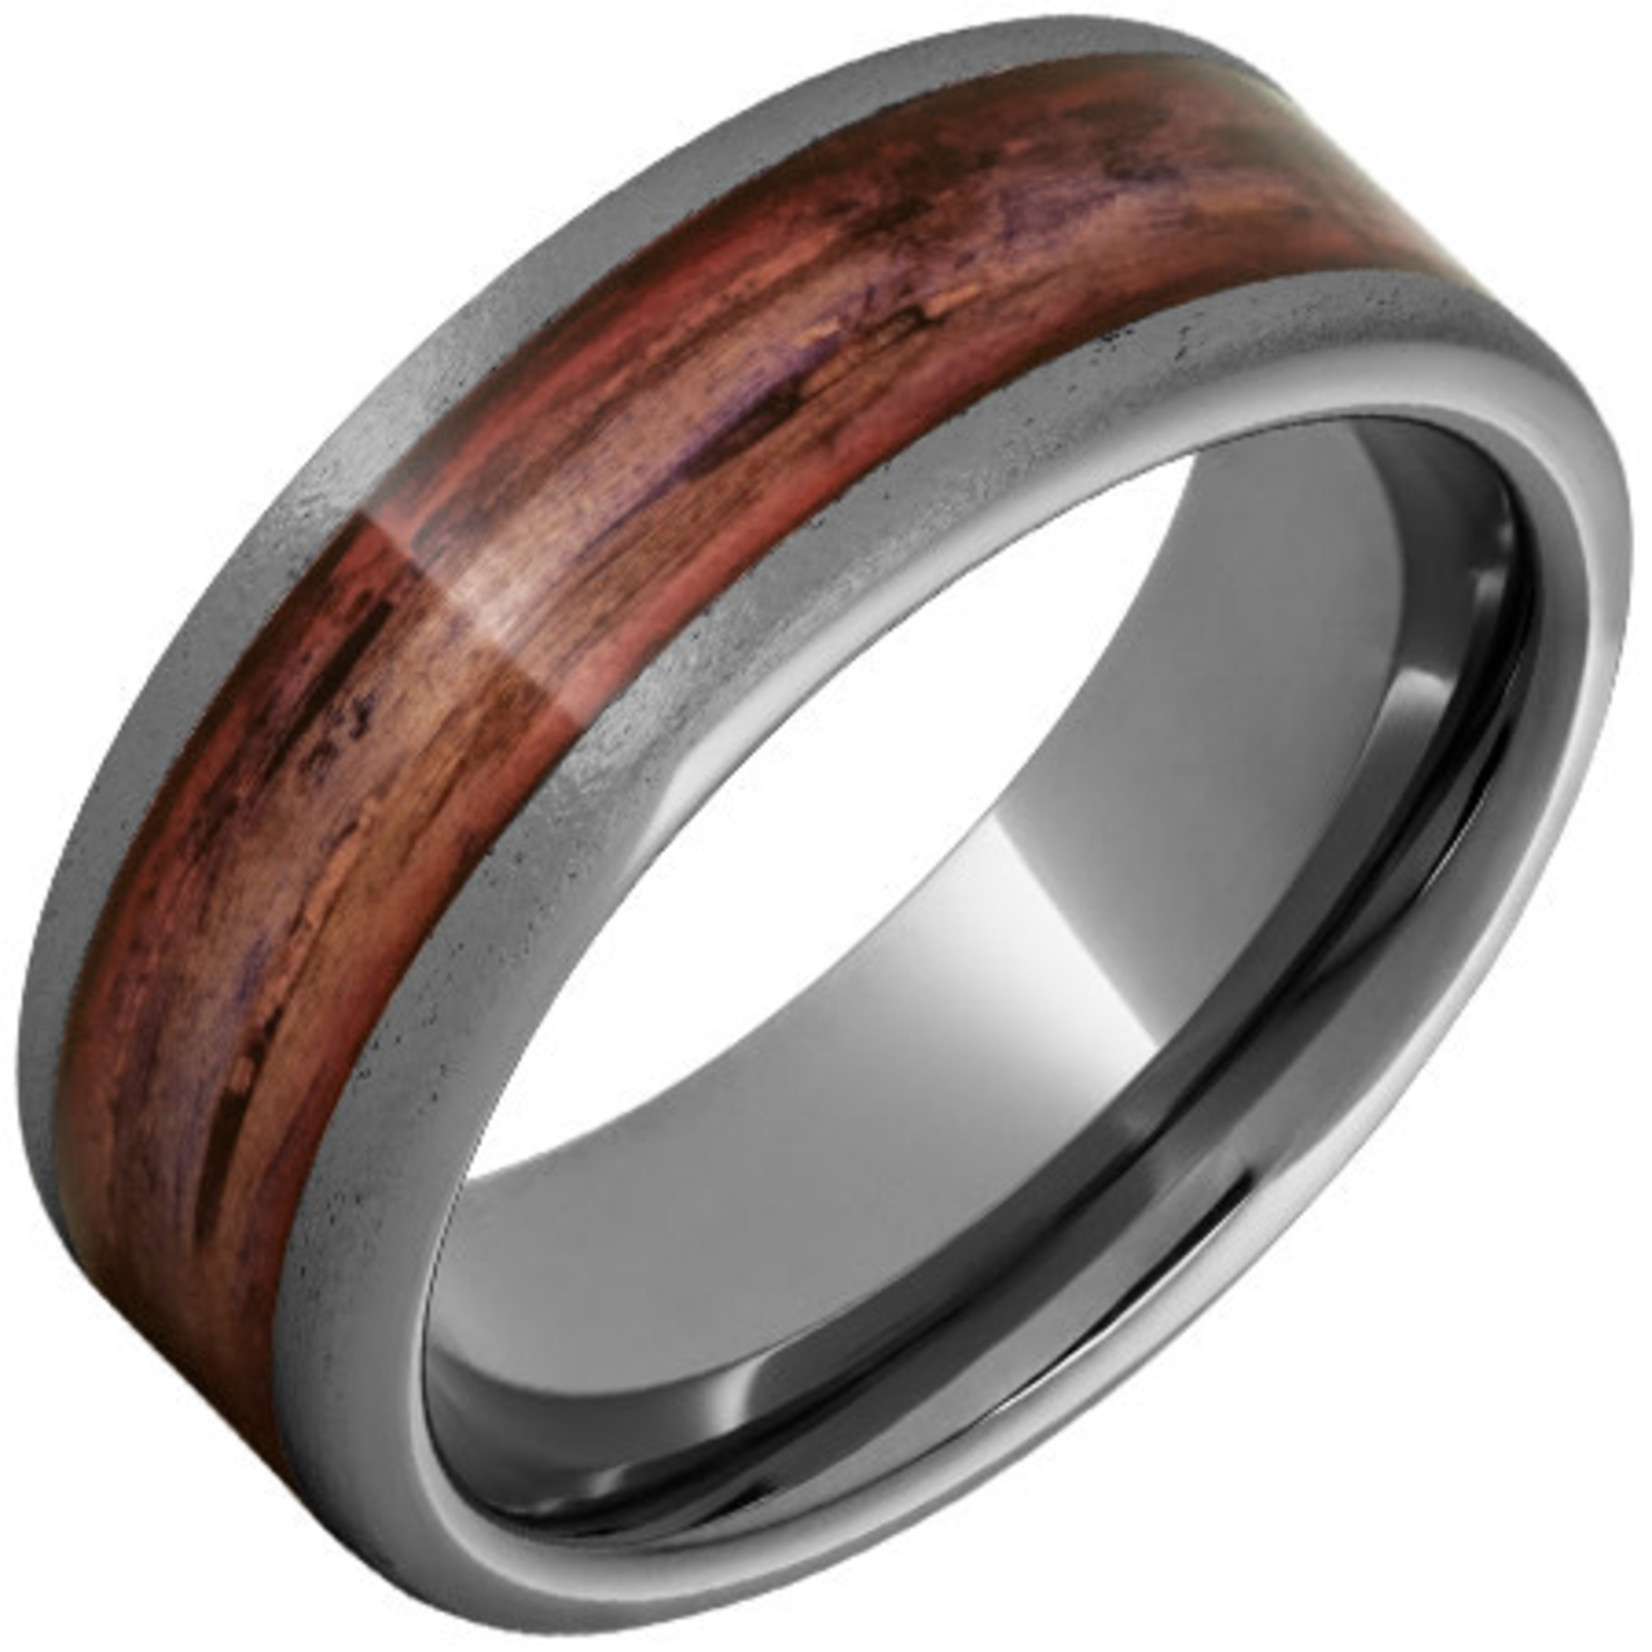 Serinium Wedding Bands Rugged Tungsten™ Flat Band with Cabernet Barrel Aged™ Inlay and Stone Finish